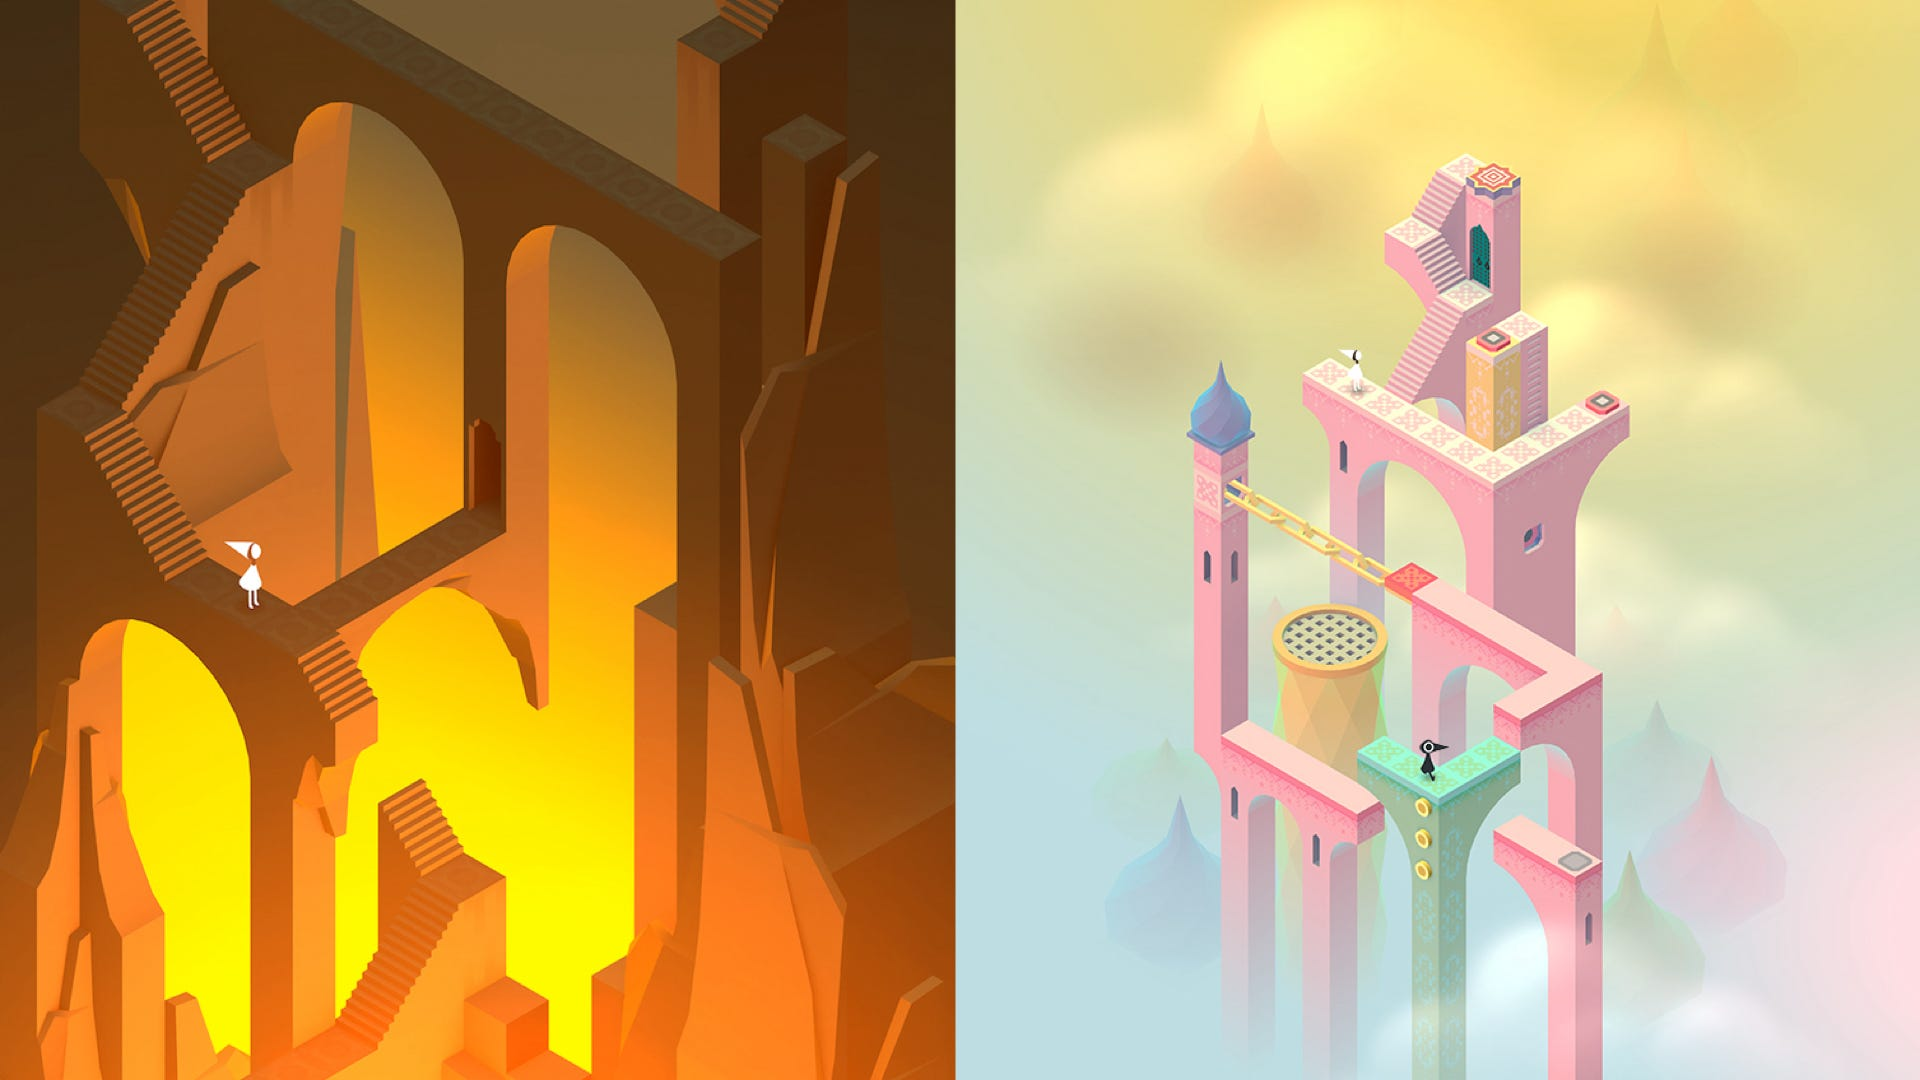 Monument Valley 2 gameplay